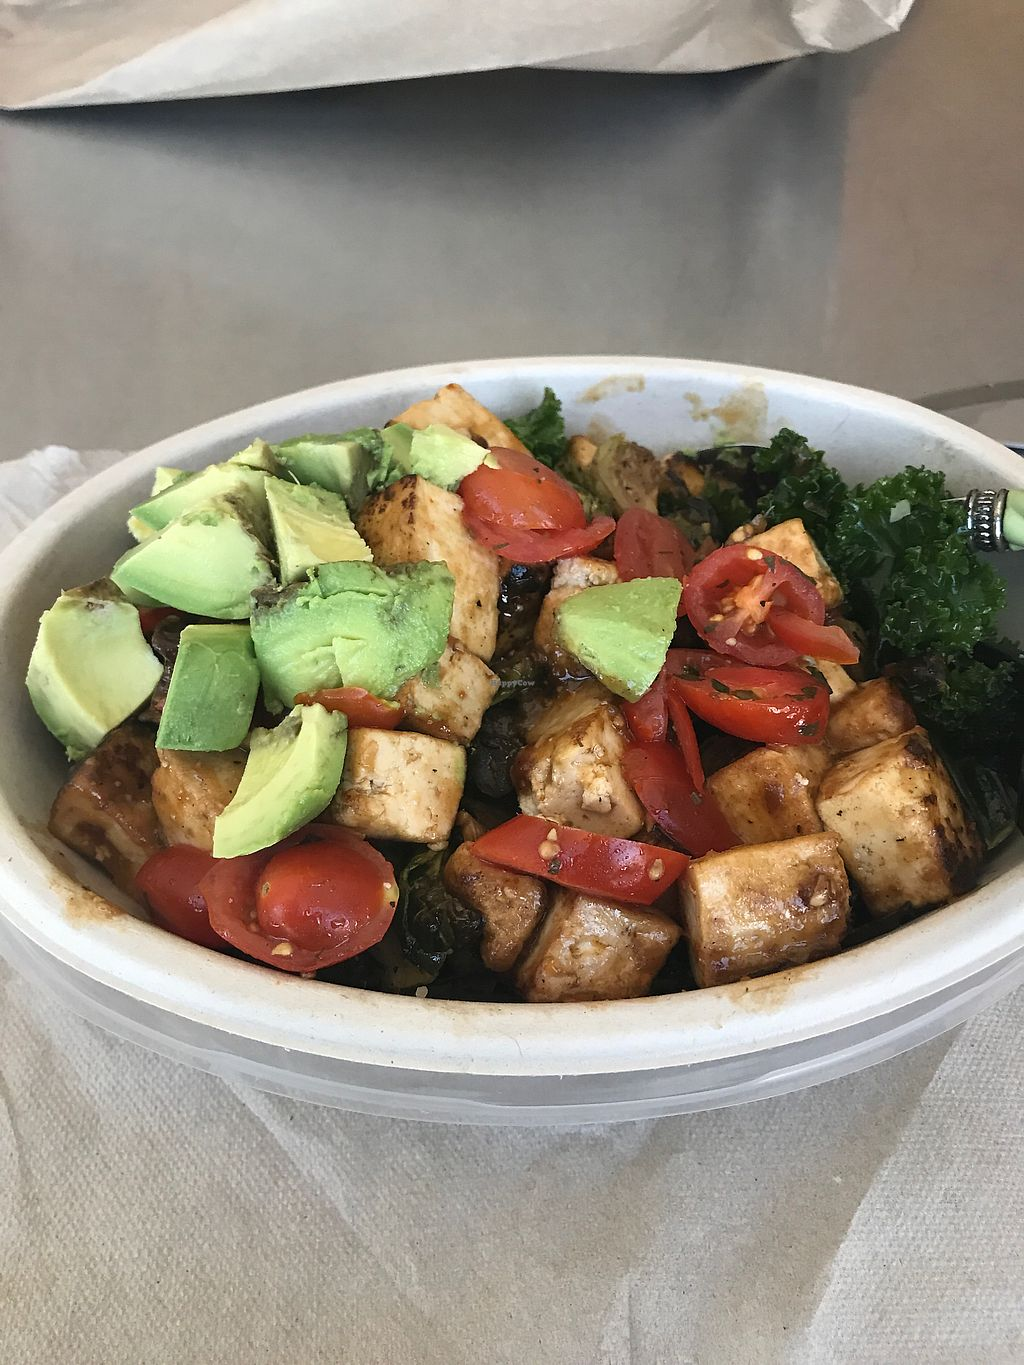 """Photo of Beehive Kitchen  by <a href=""""/members/profile/mcollins88"""">mcollins88</a> <br/>Tofu, mushrooms, tomatoes and kale <br/> September 28, 2017  - <a href='/contact/abuse/image/99739/309447'>Report</a>"""